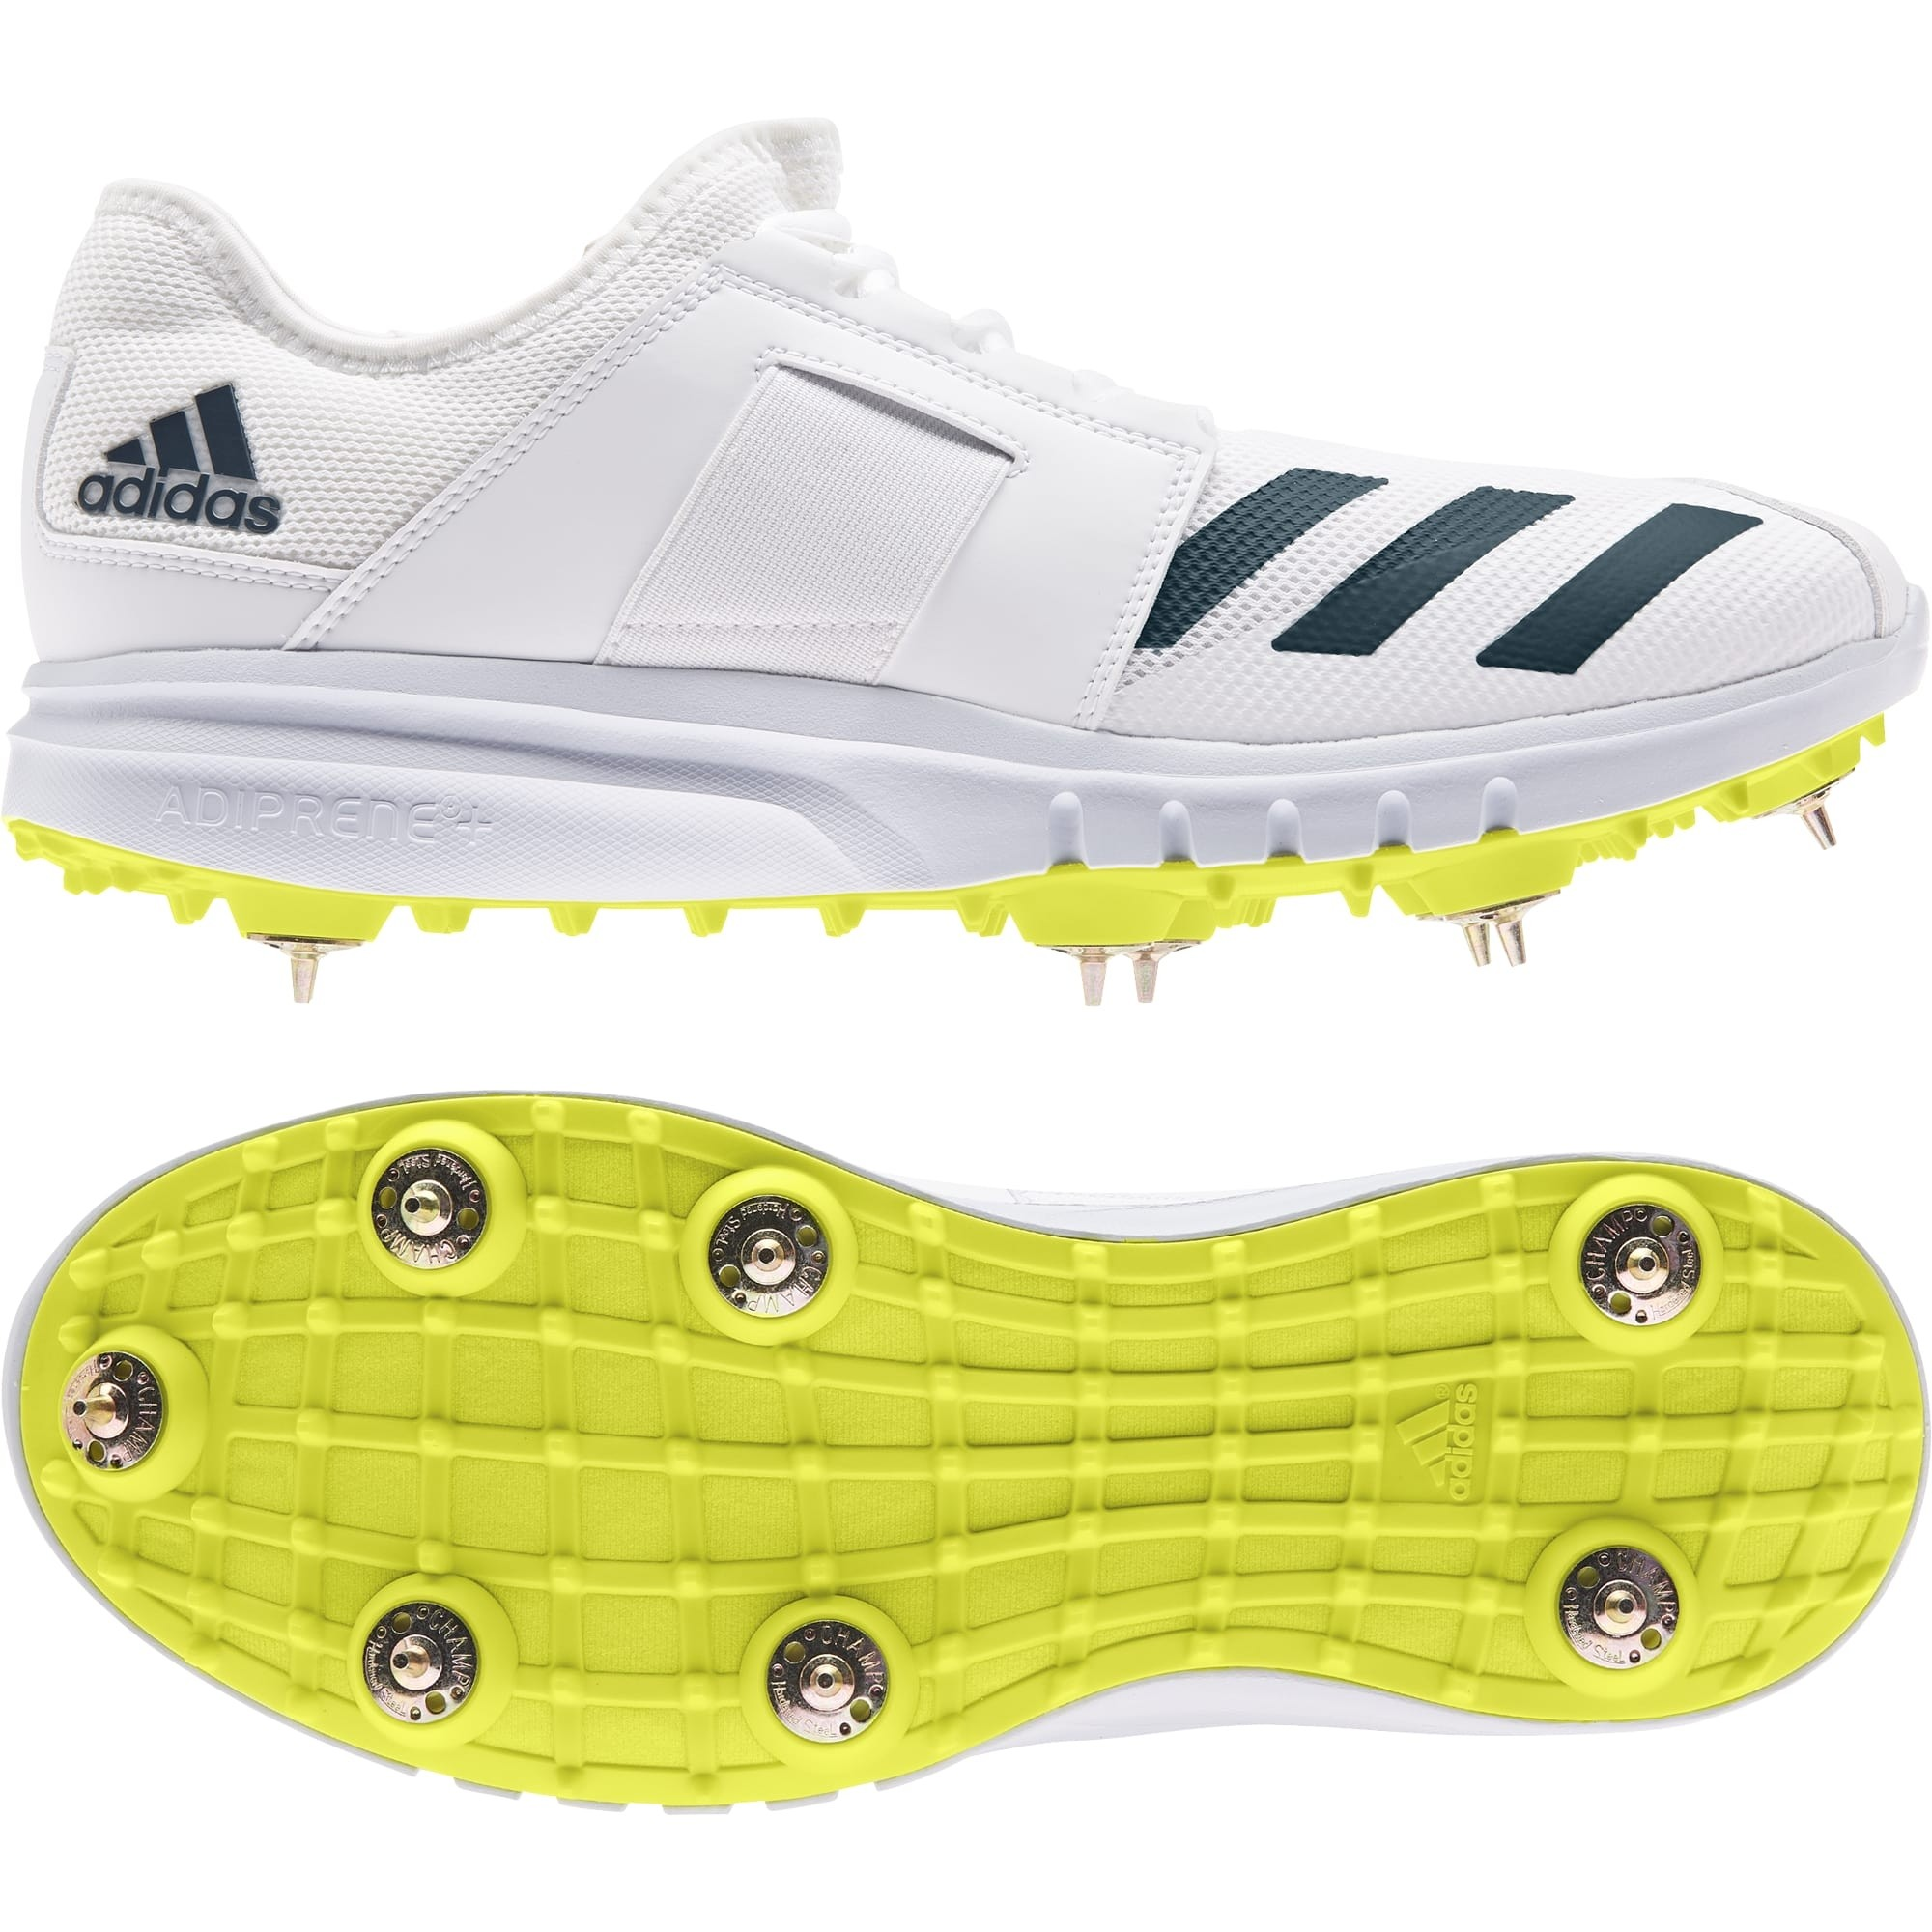 2021 Adidas Howzat Junior Full Spike Cricket Shoes - Acid Yellow